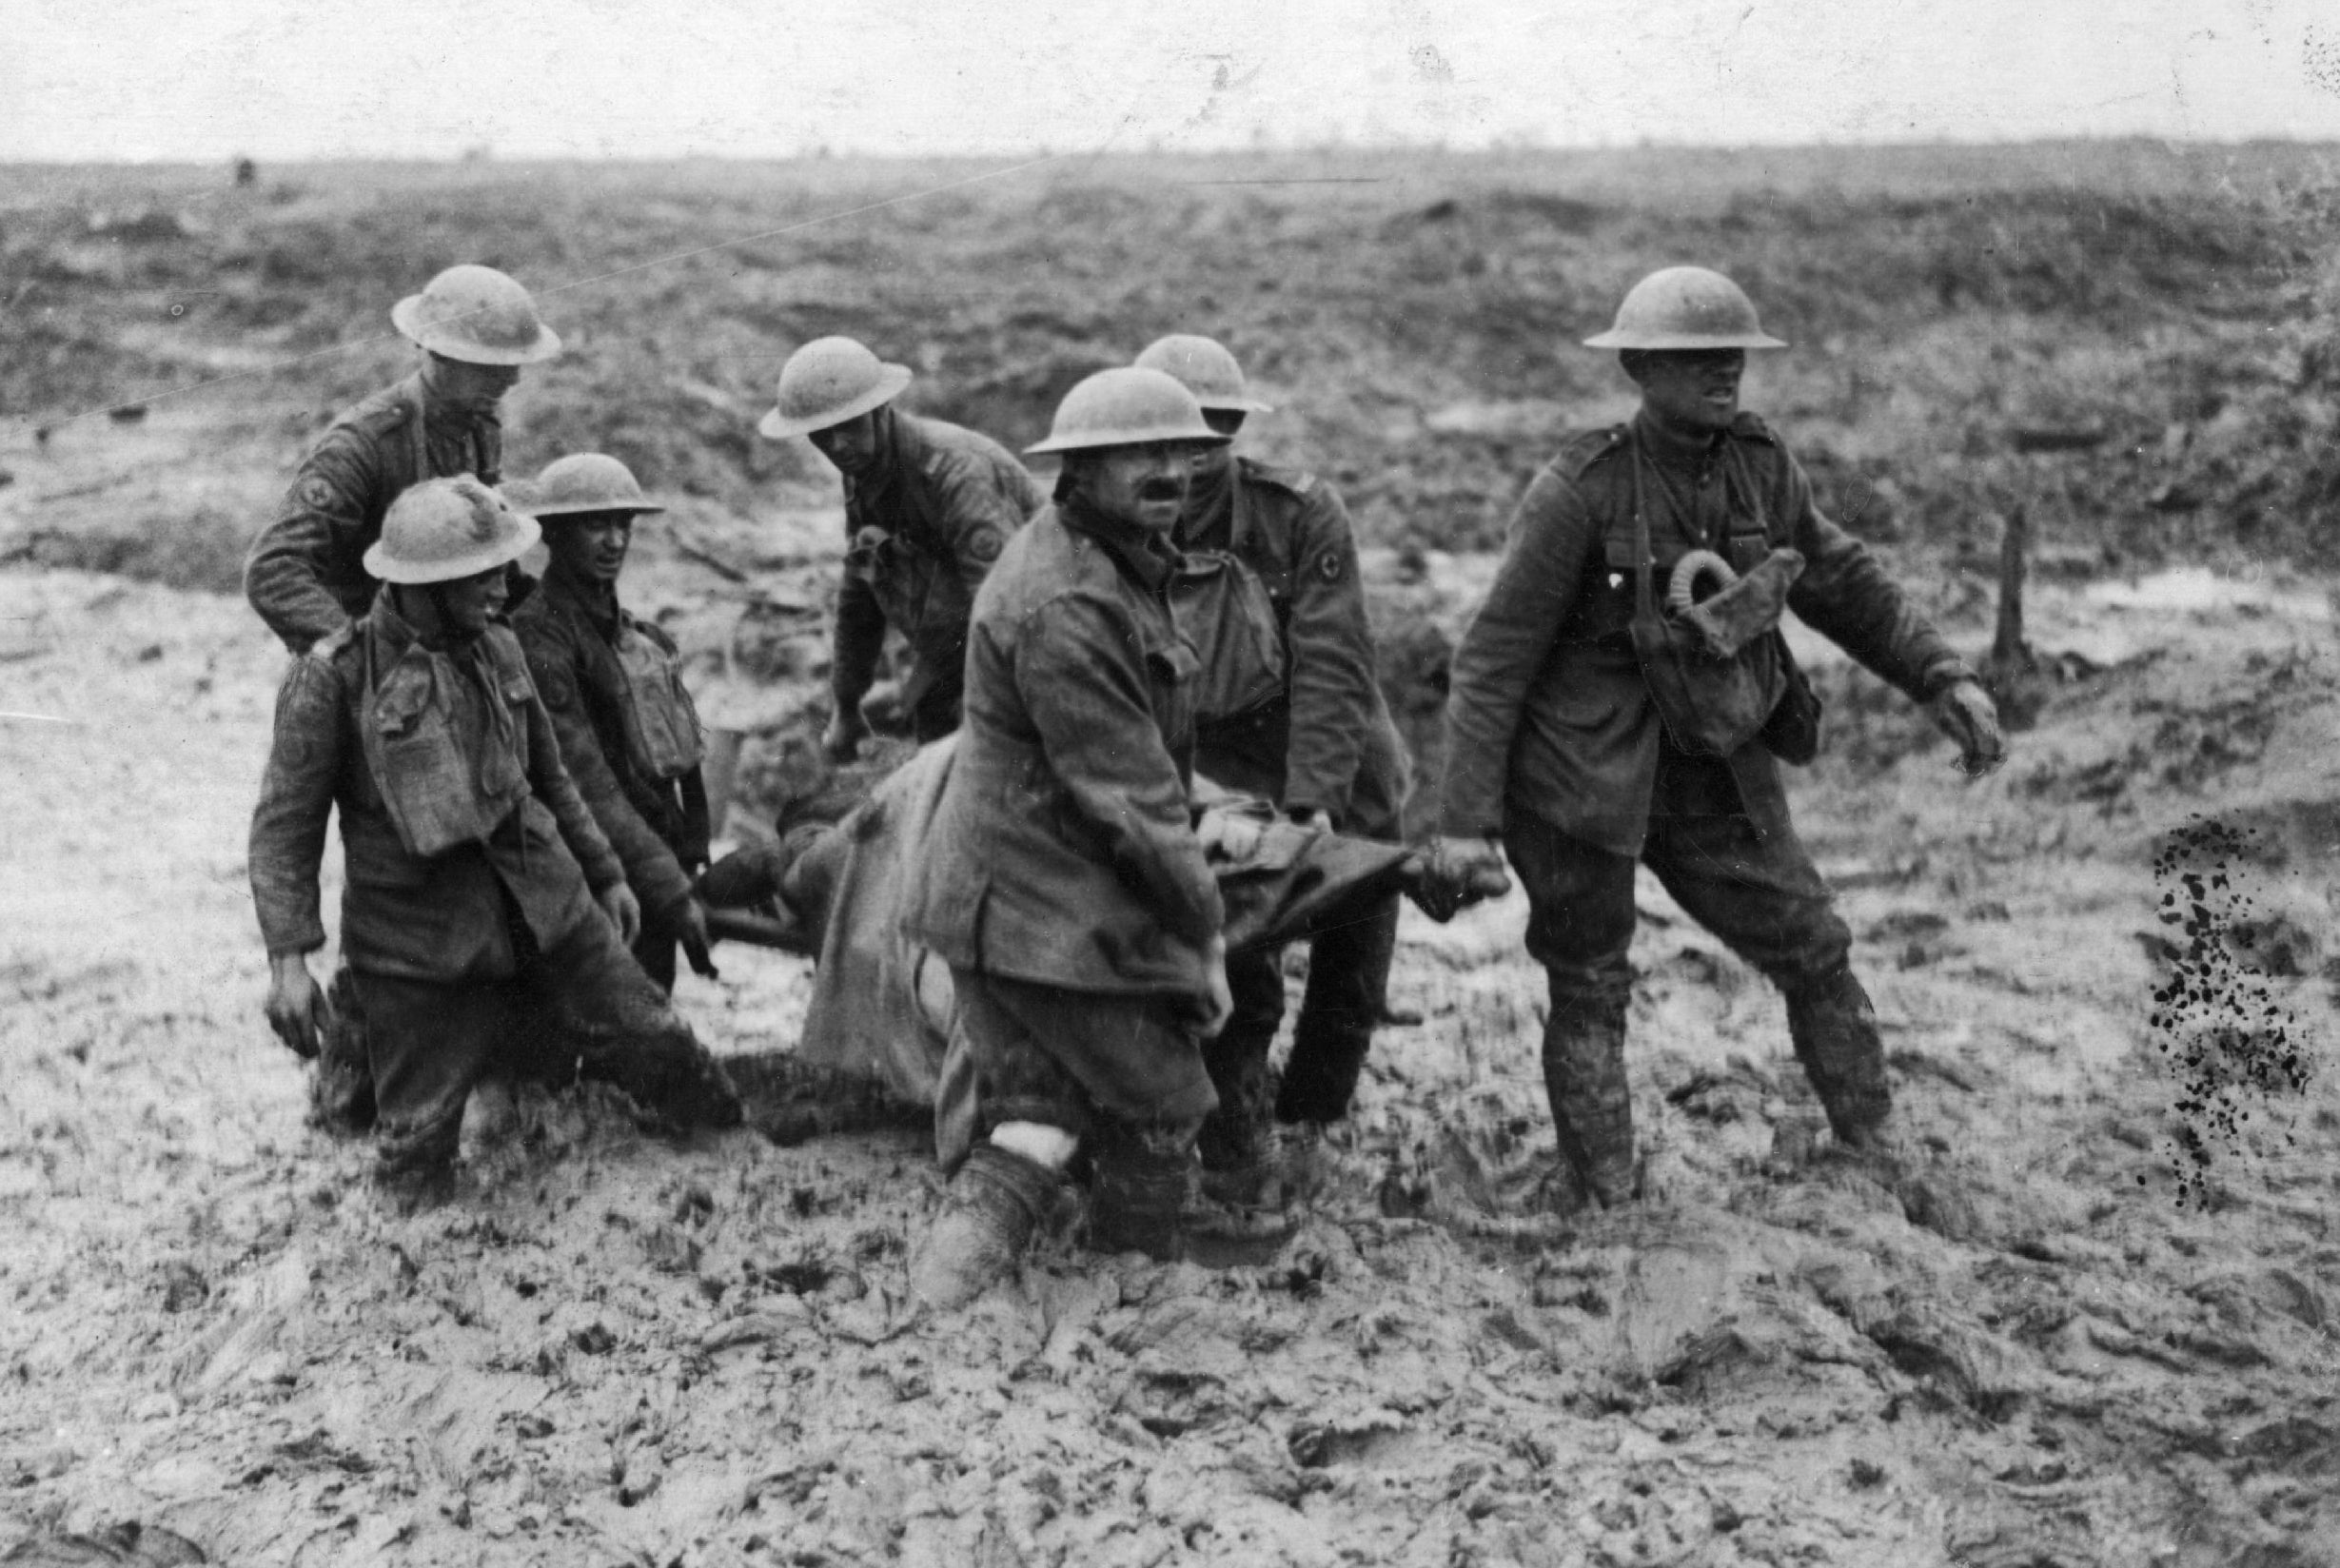 Passchendaele 100th anniversary why was this one of the most brutal battles of the first world war